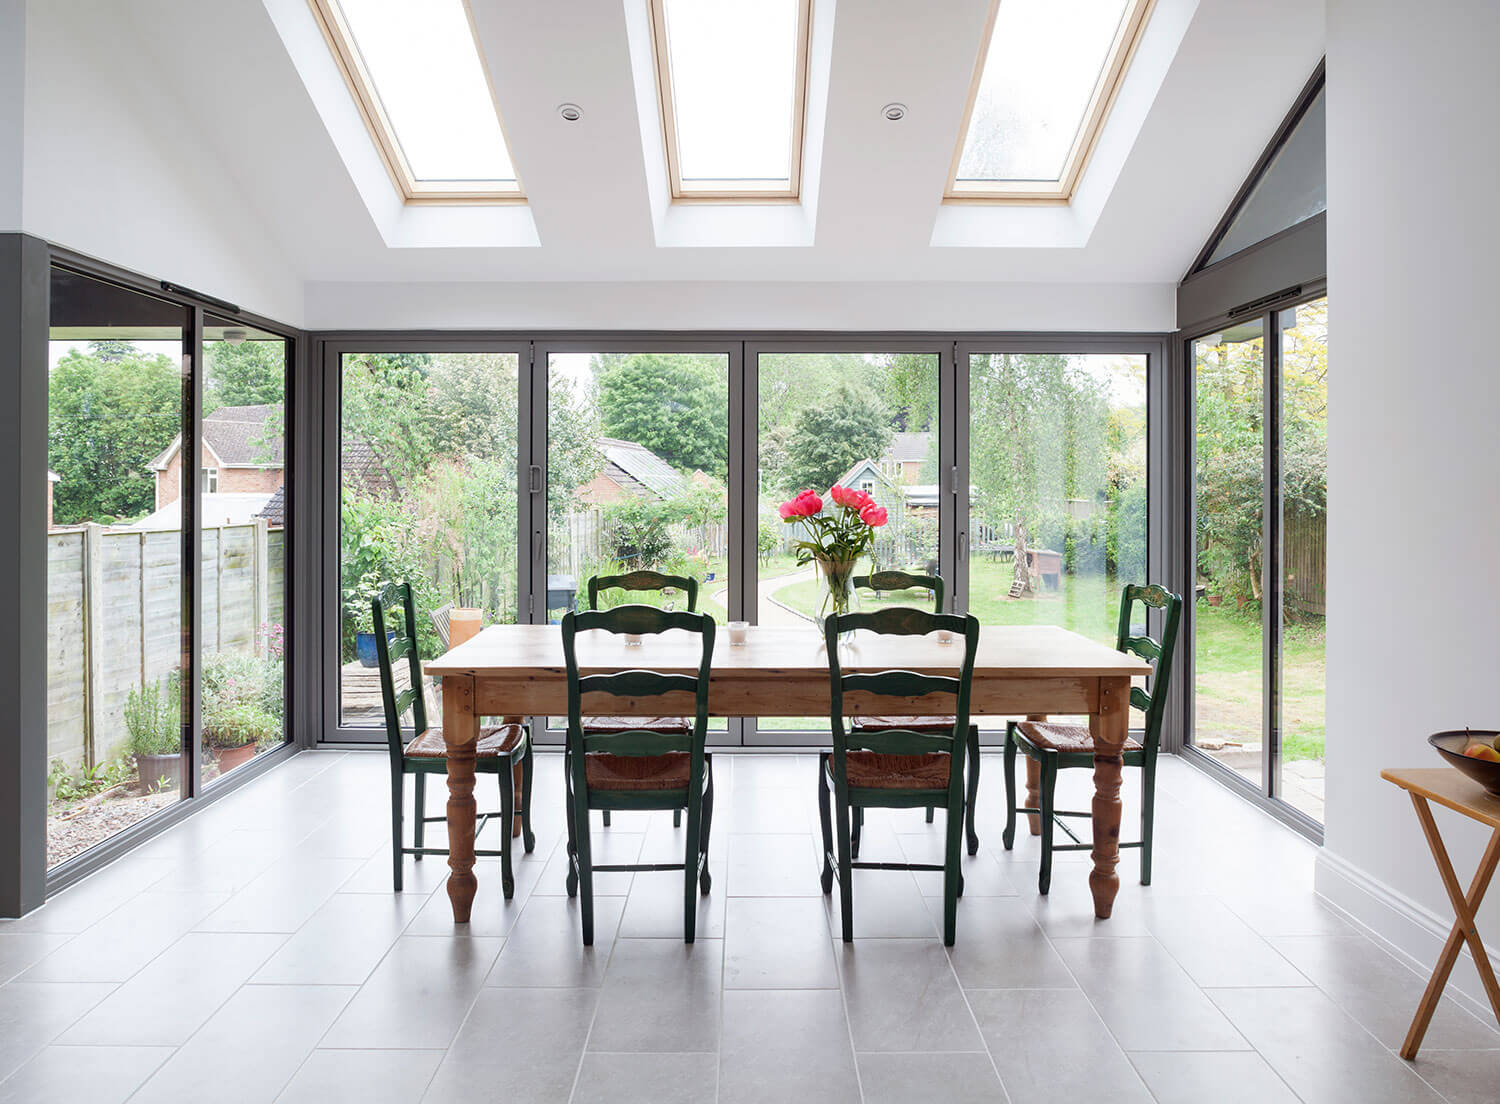 Dining table inside conservatory